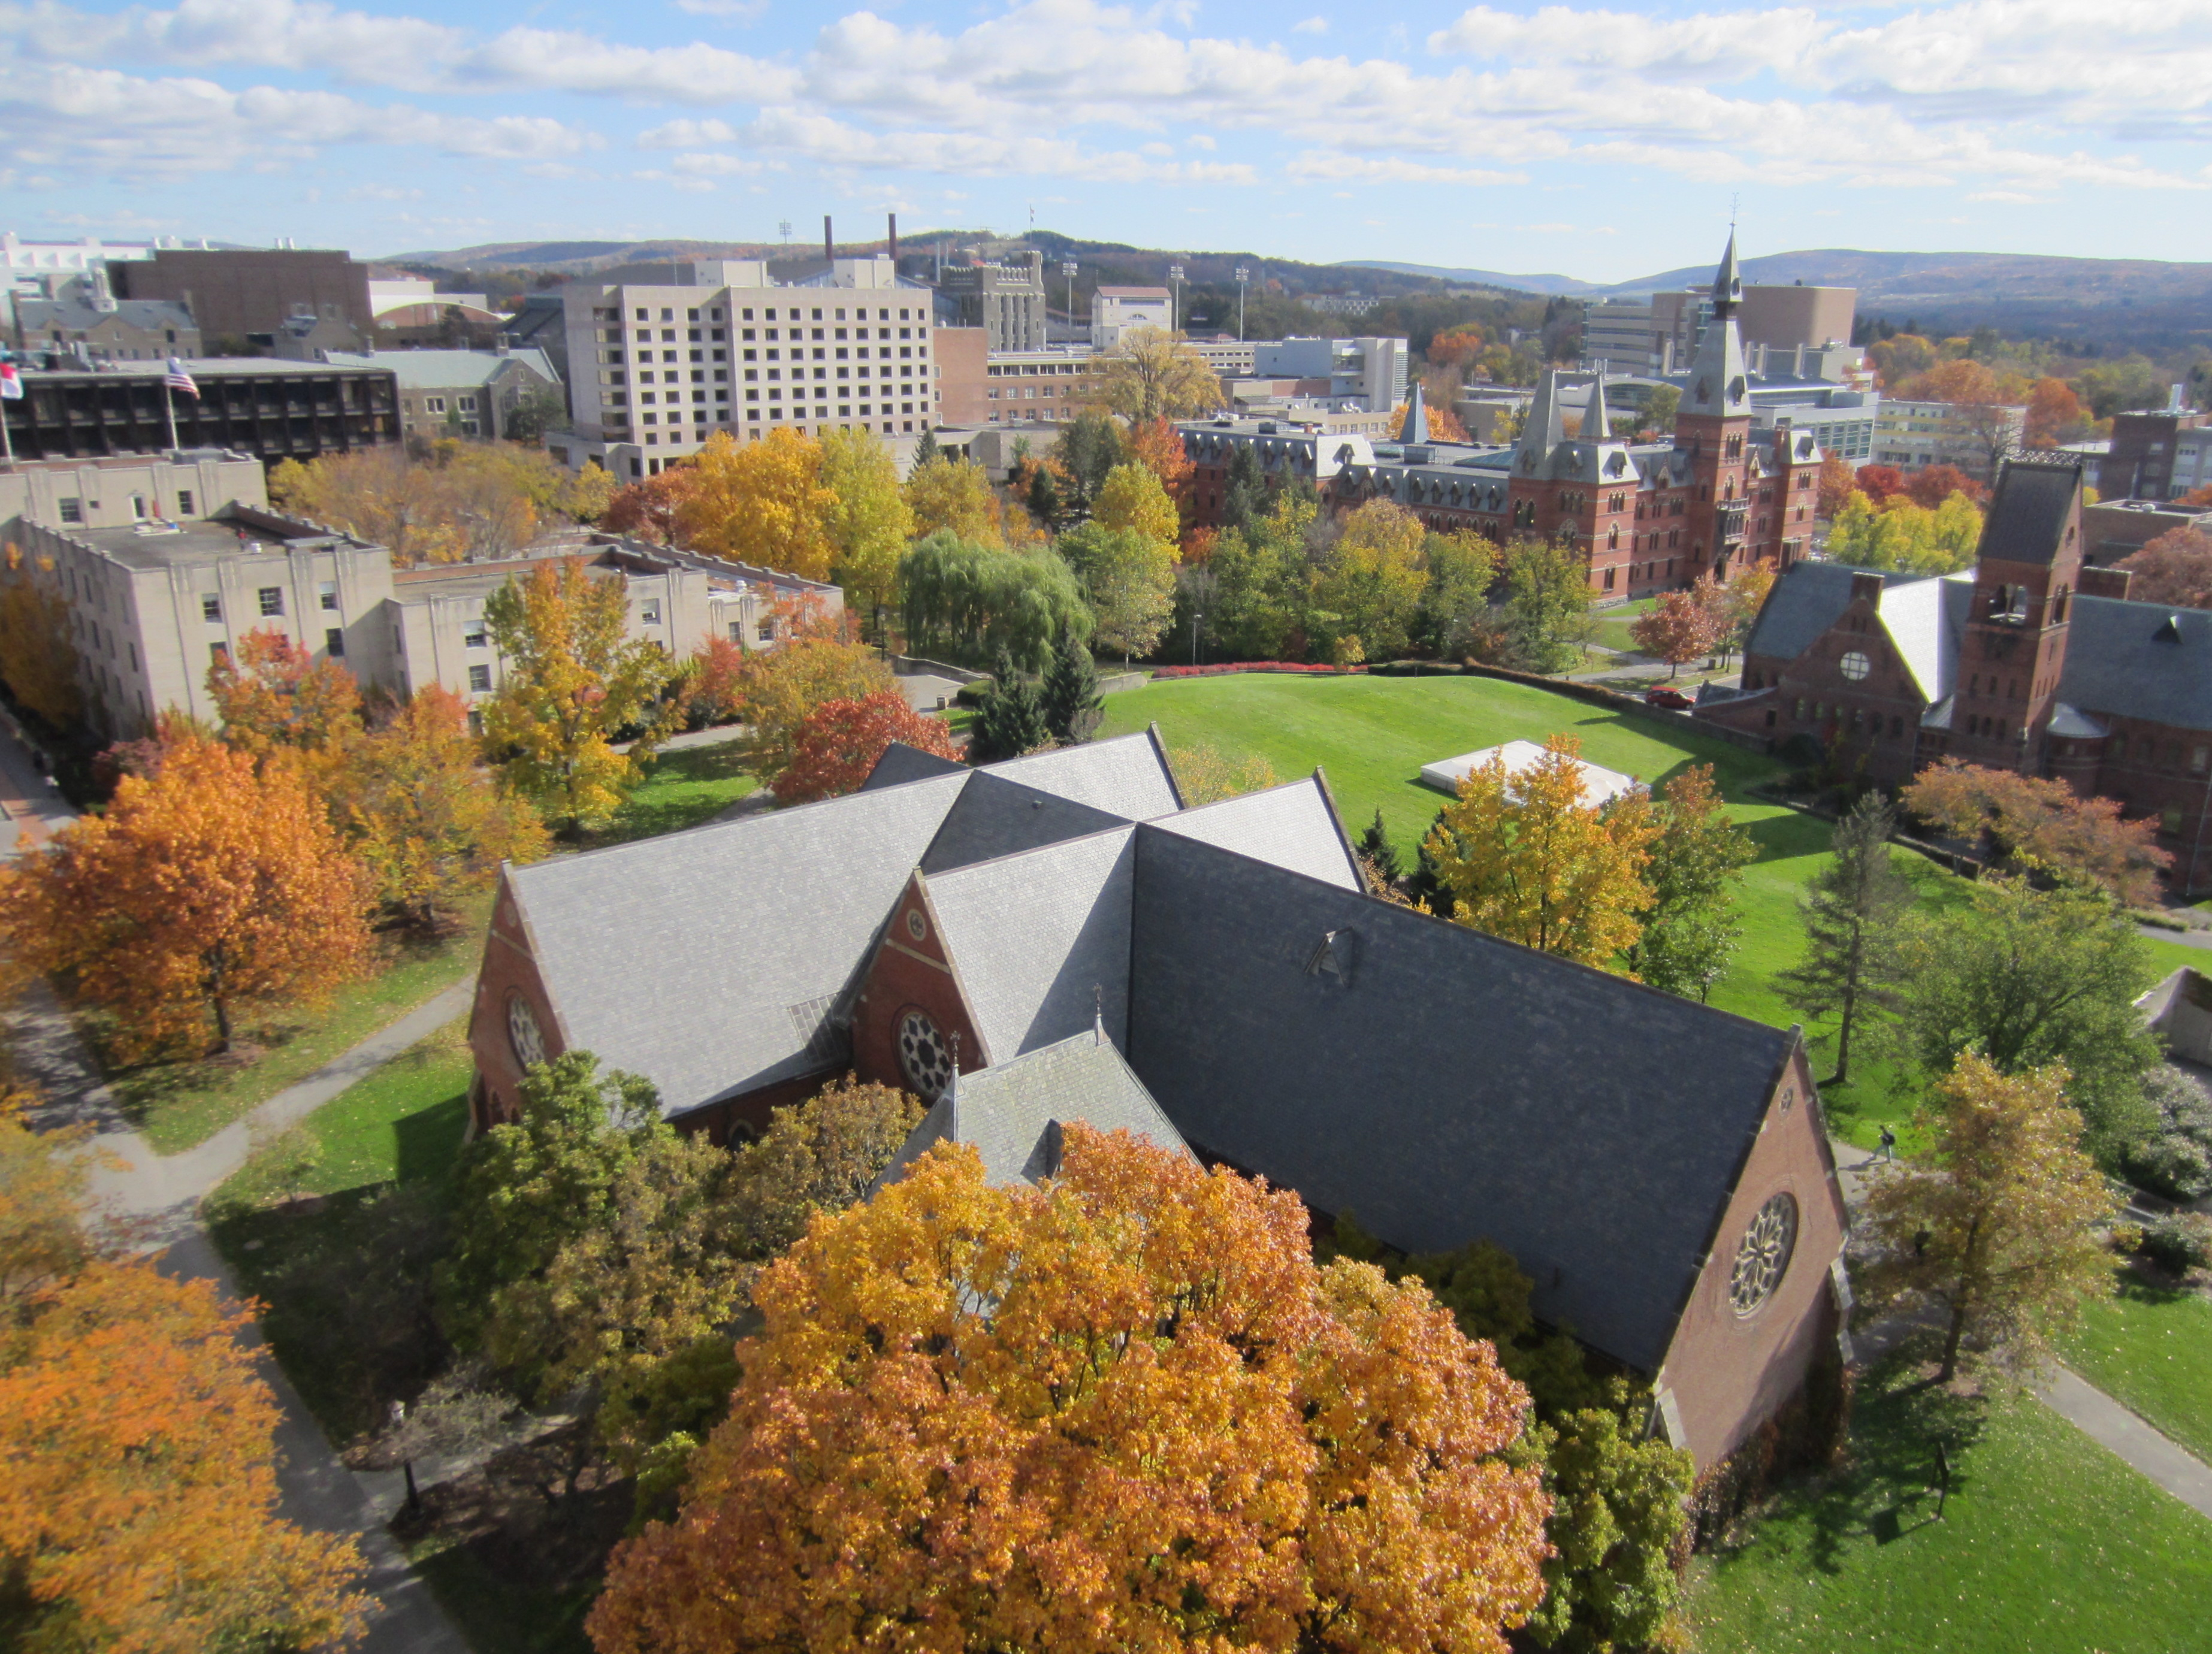 Cornell_University_from_McGraw_Tower